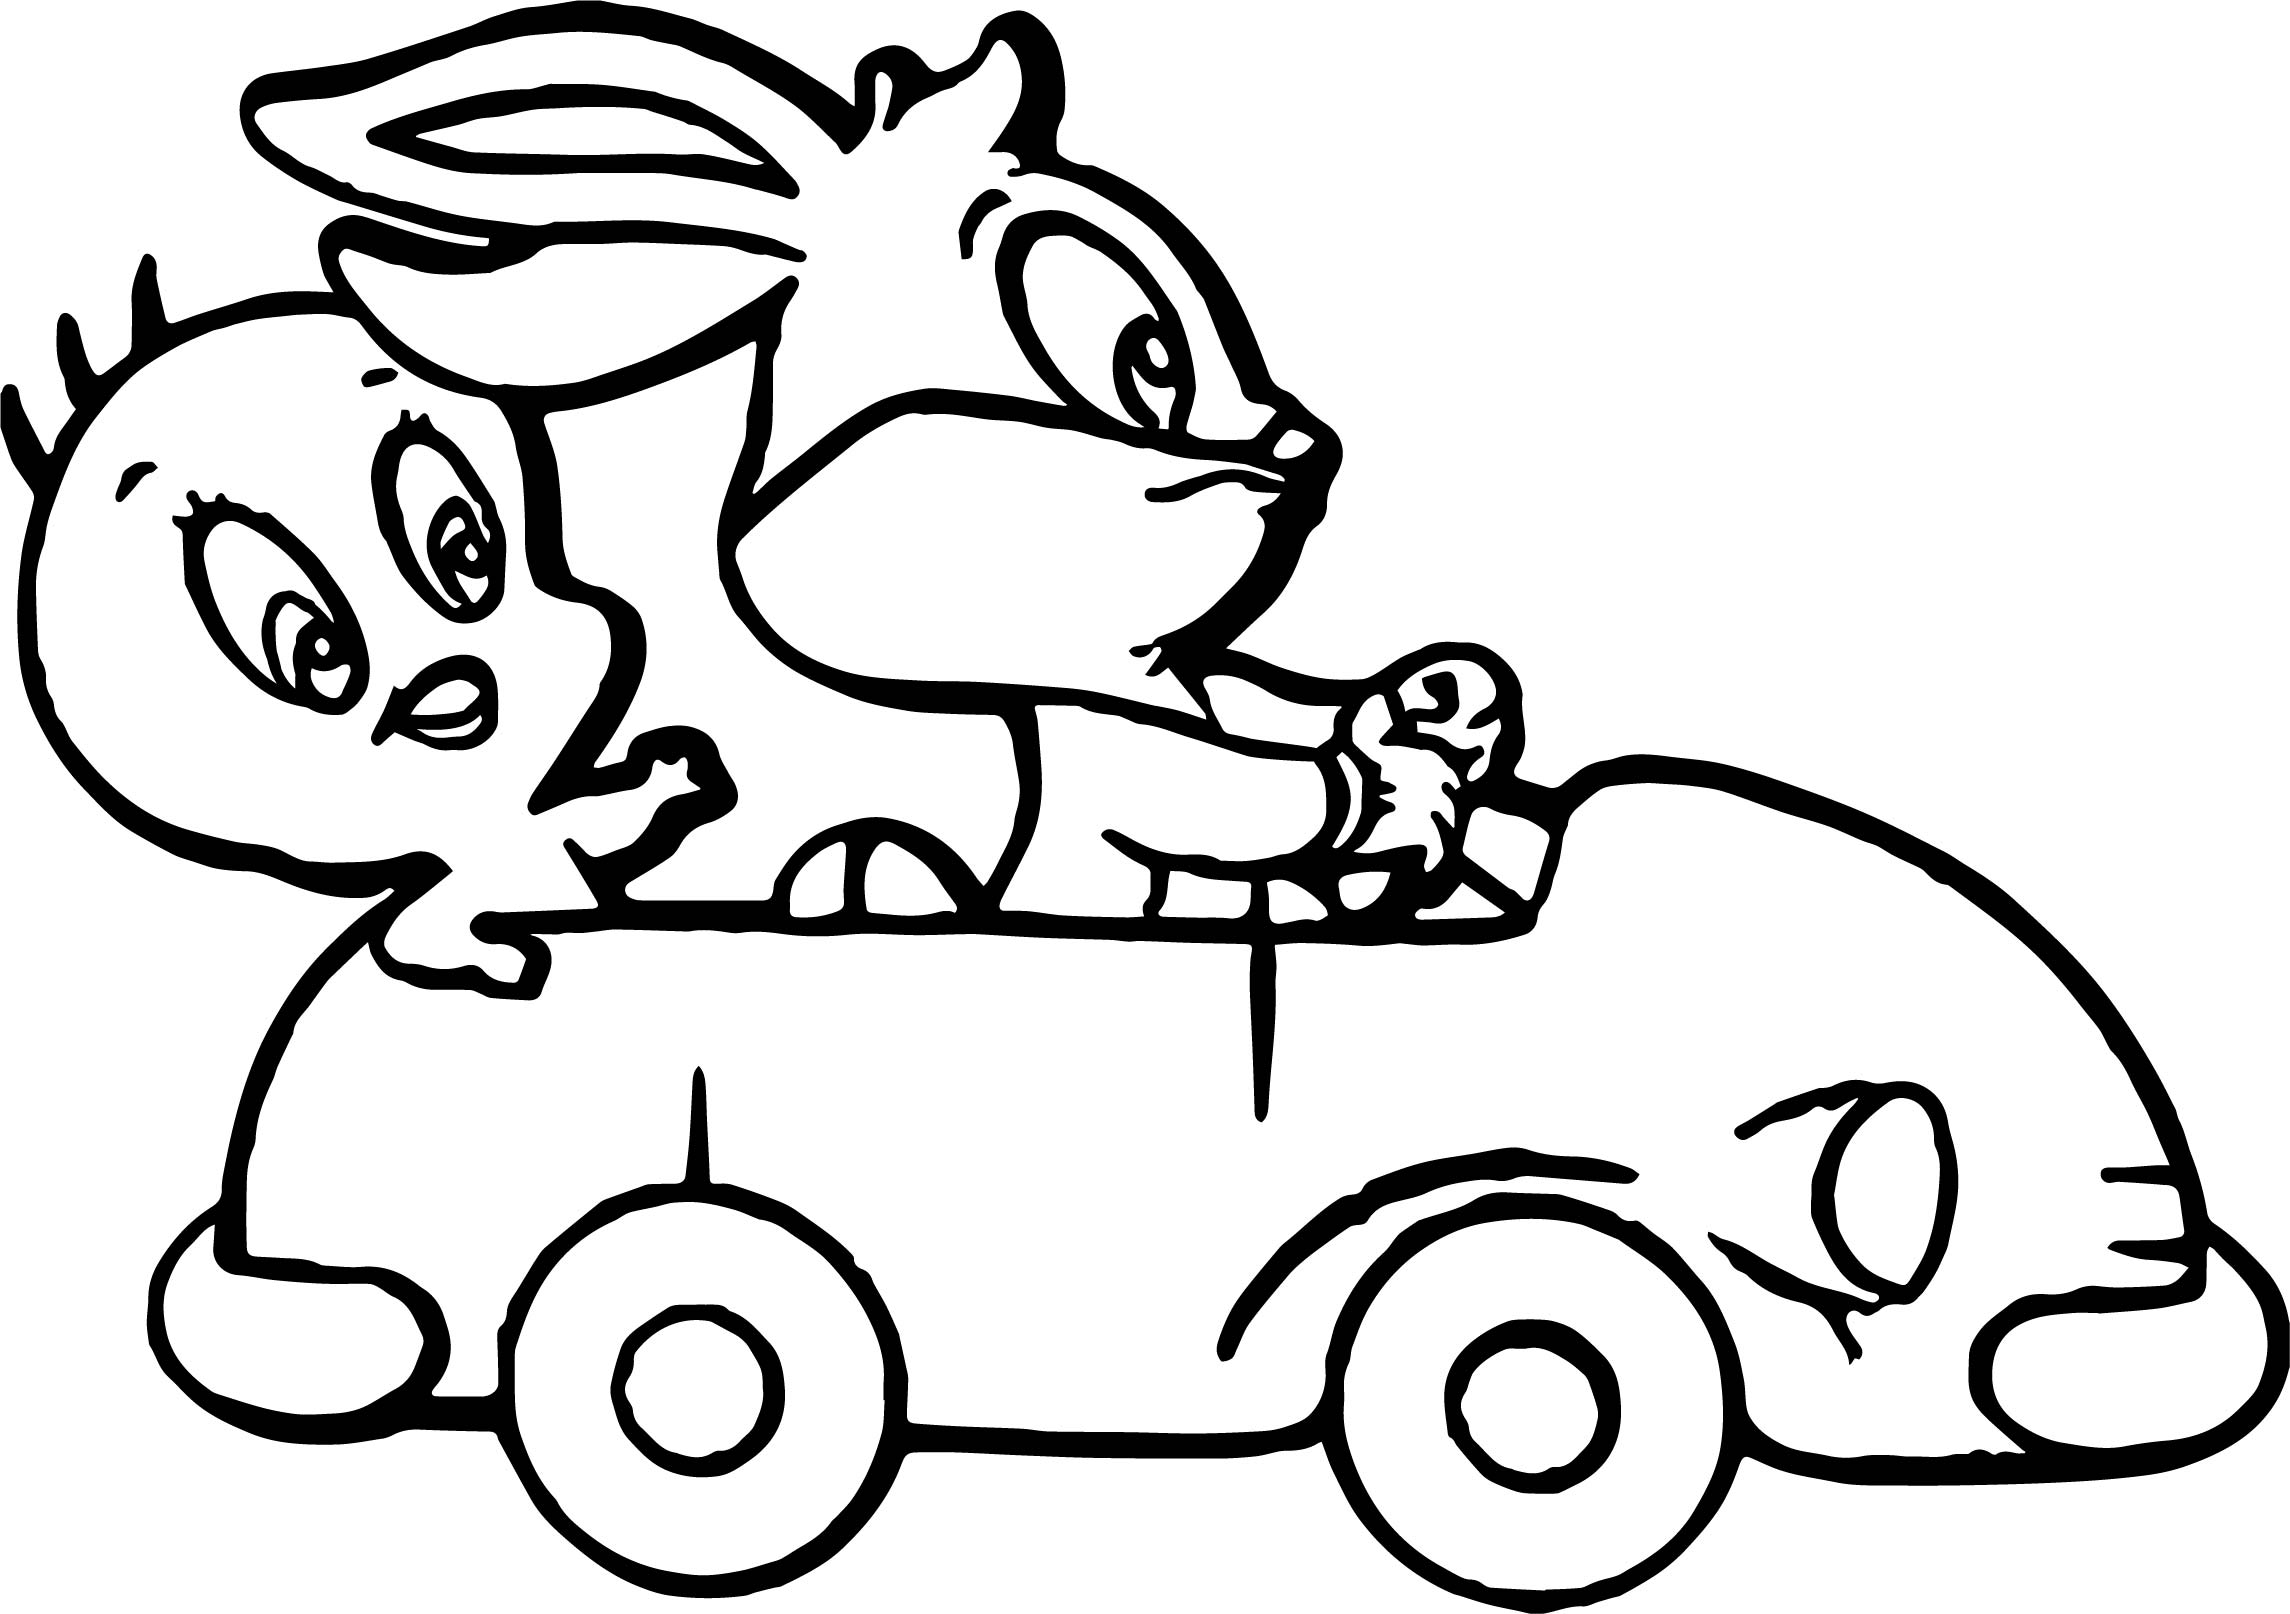 Baby Tweety Baby Bugs Bunny Driving Toy Car Coloring Page